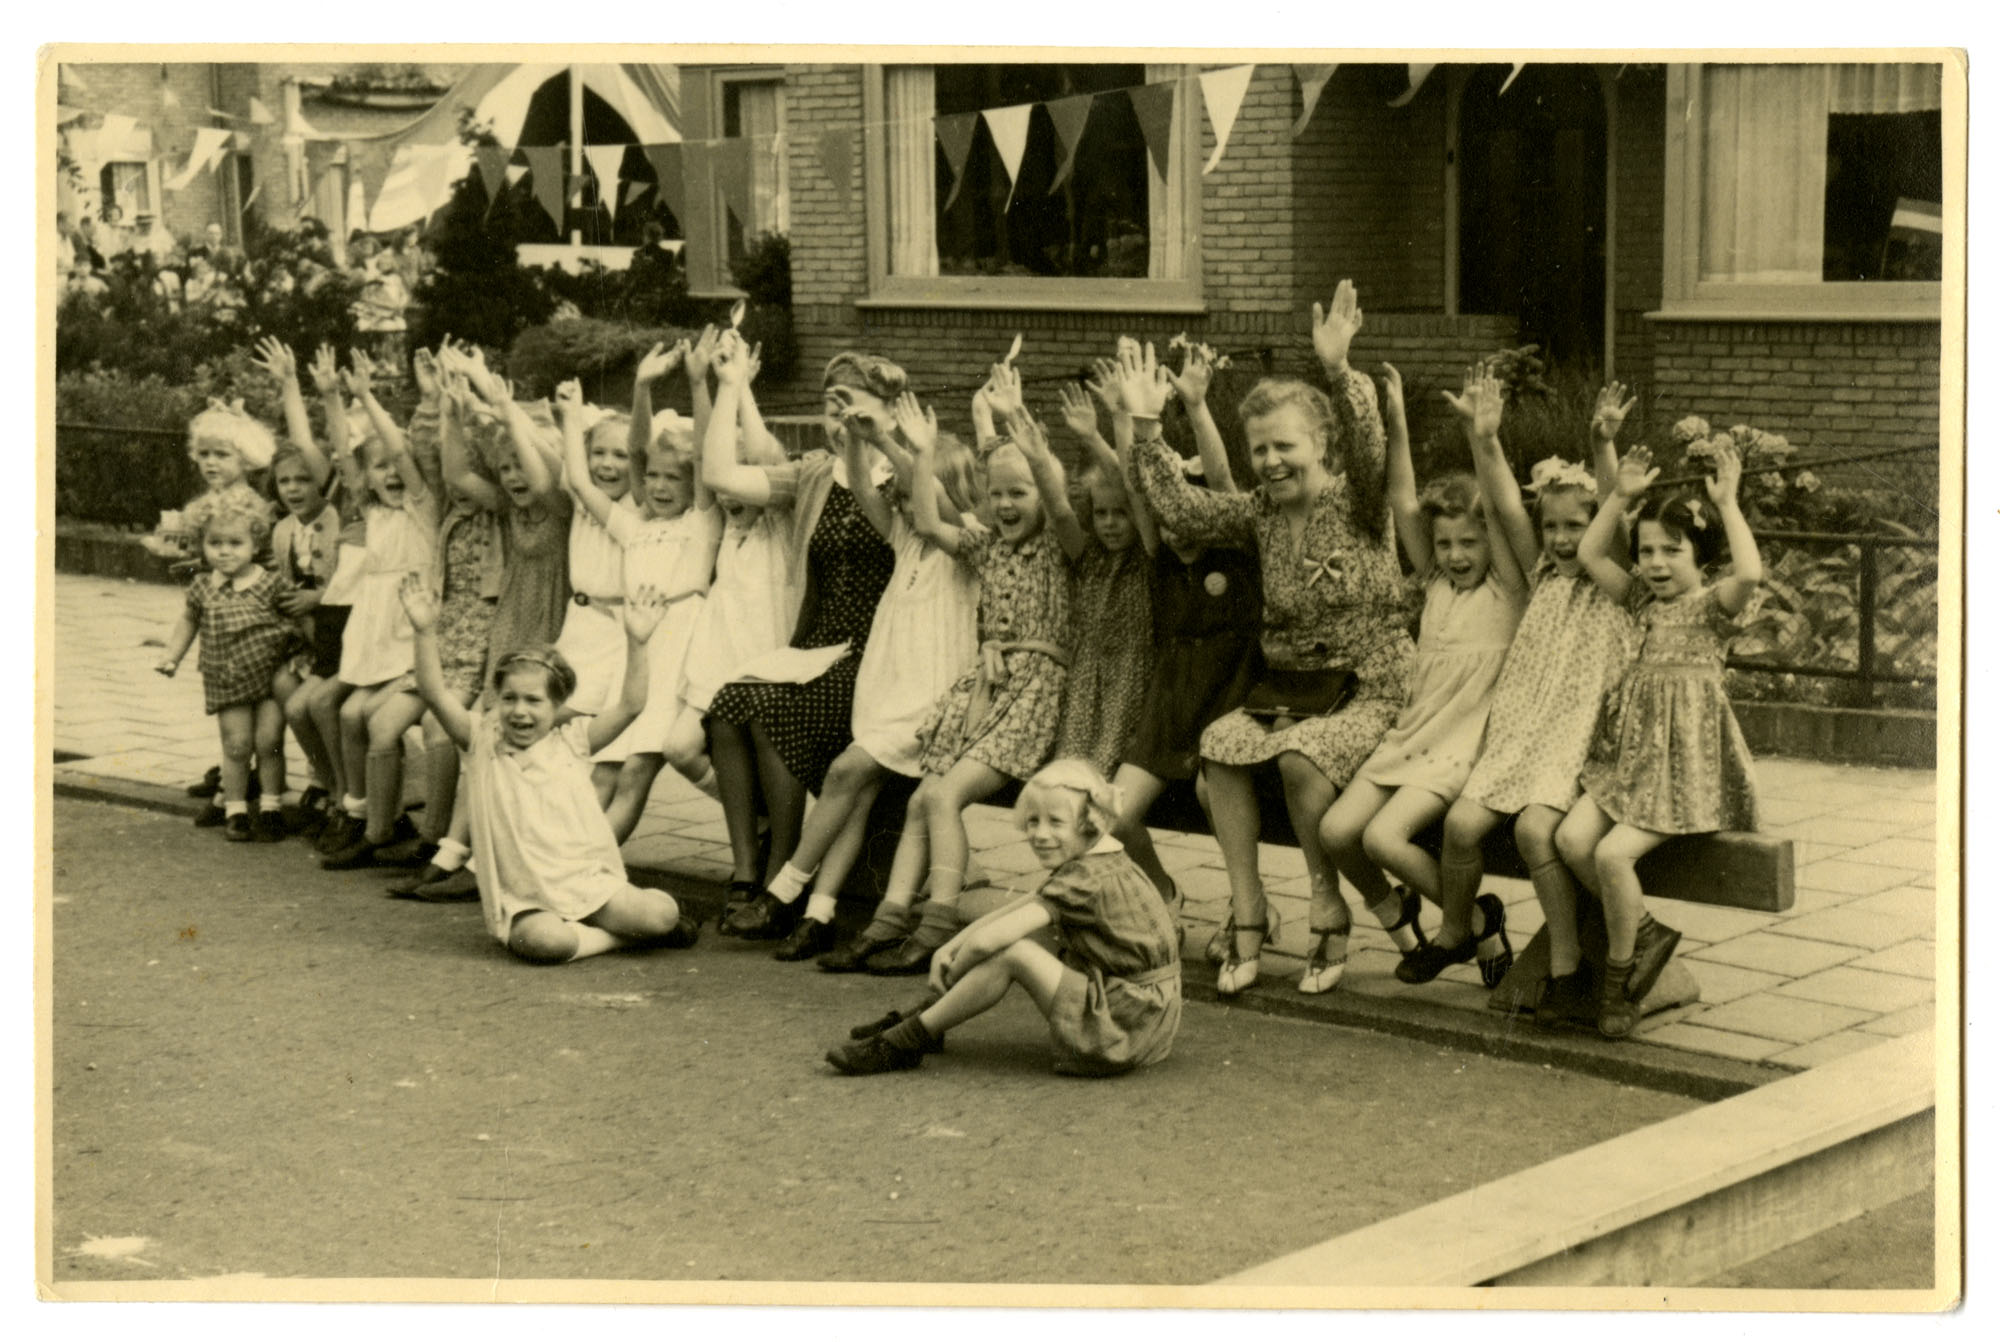 First anniversary of liberation, Bussum, Holland, May 5, 1946